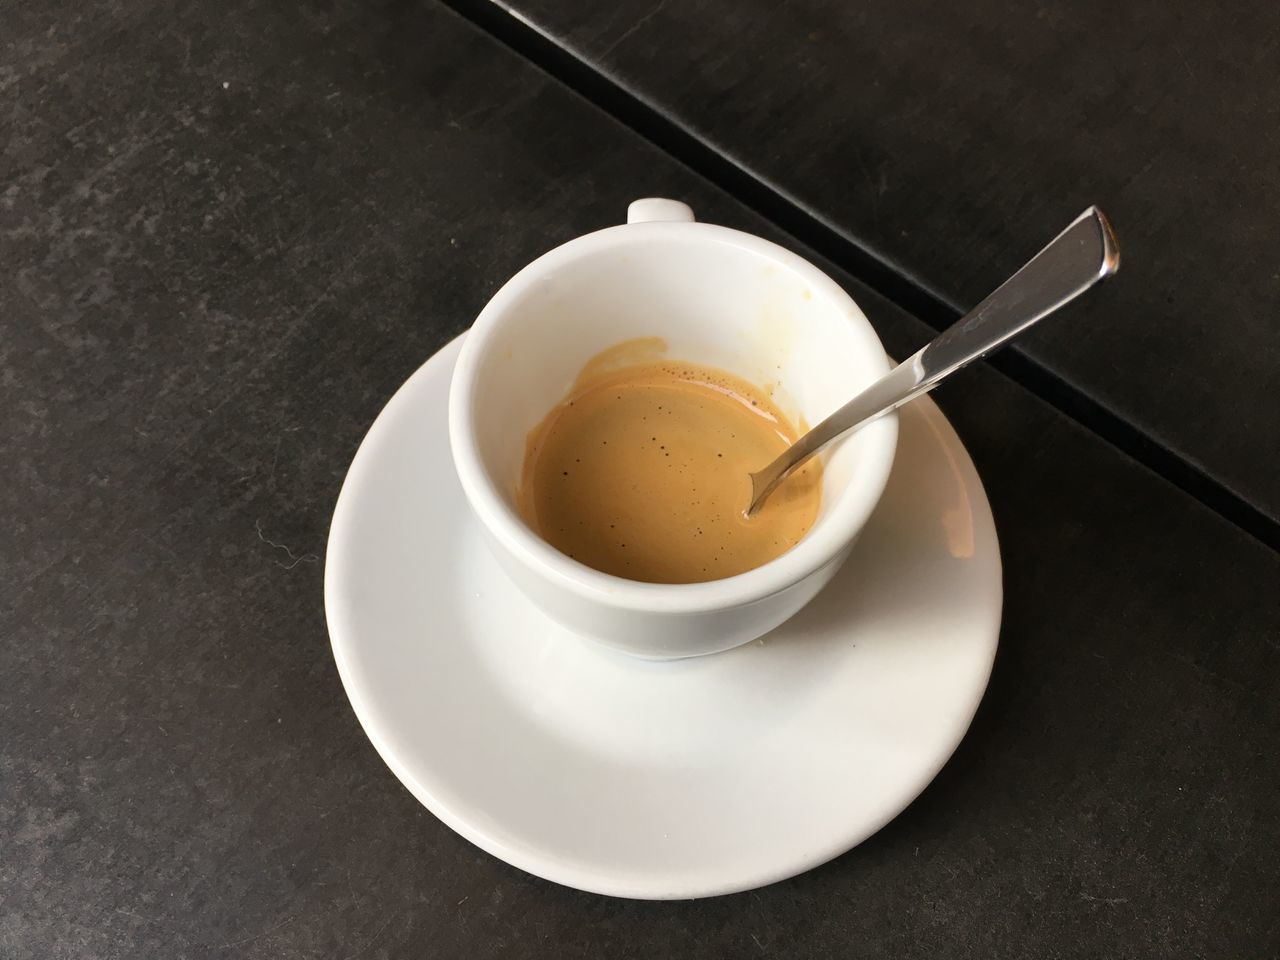 refreshment, drink, food and drink, saucer, table, no people, freshness, serving size, healthy eating, indoors, close-up, food, day